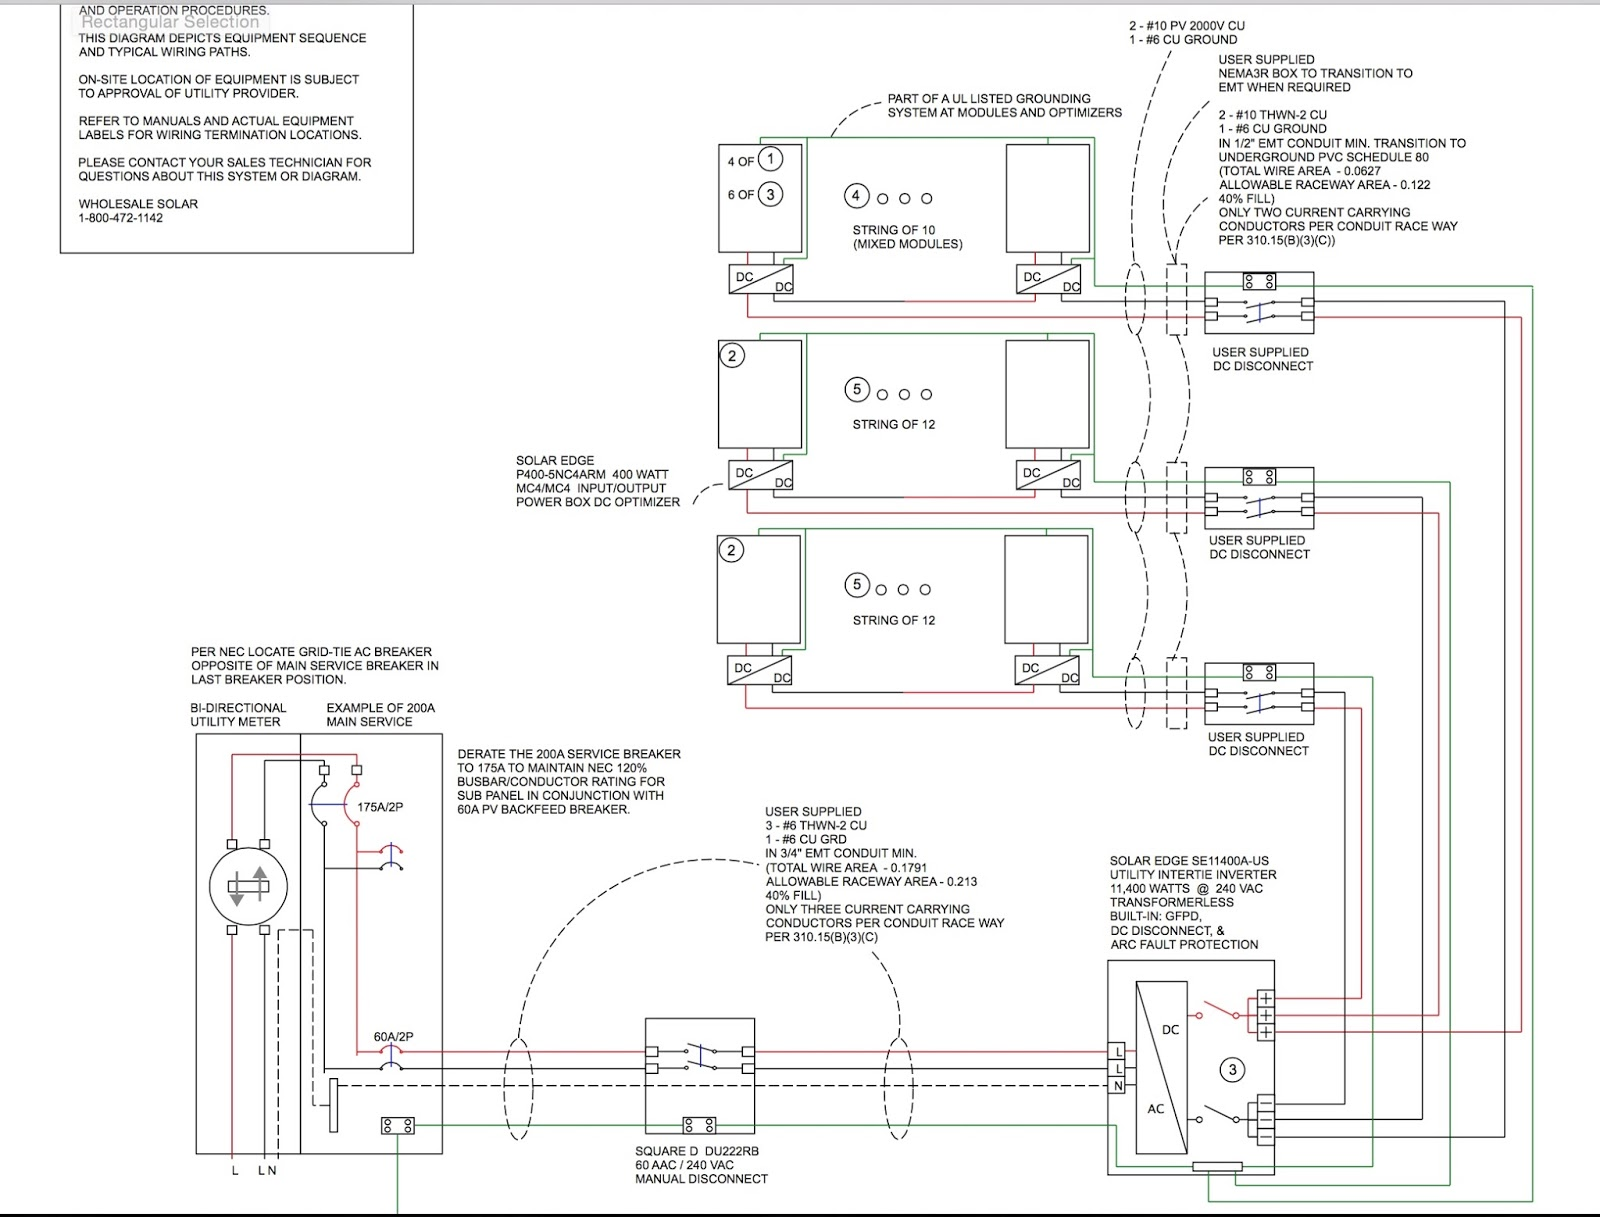 Solaredge Wiring Diagram from 4.bp.blogspot.com